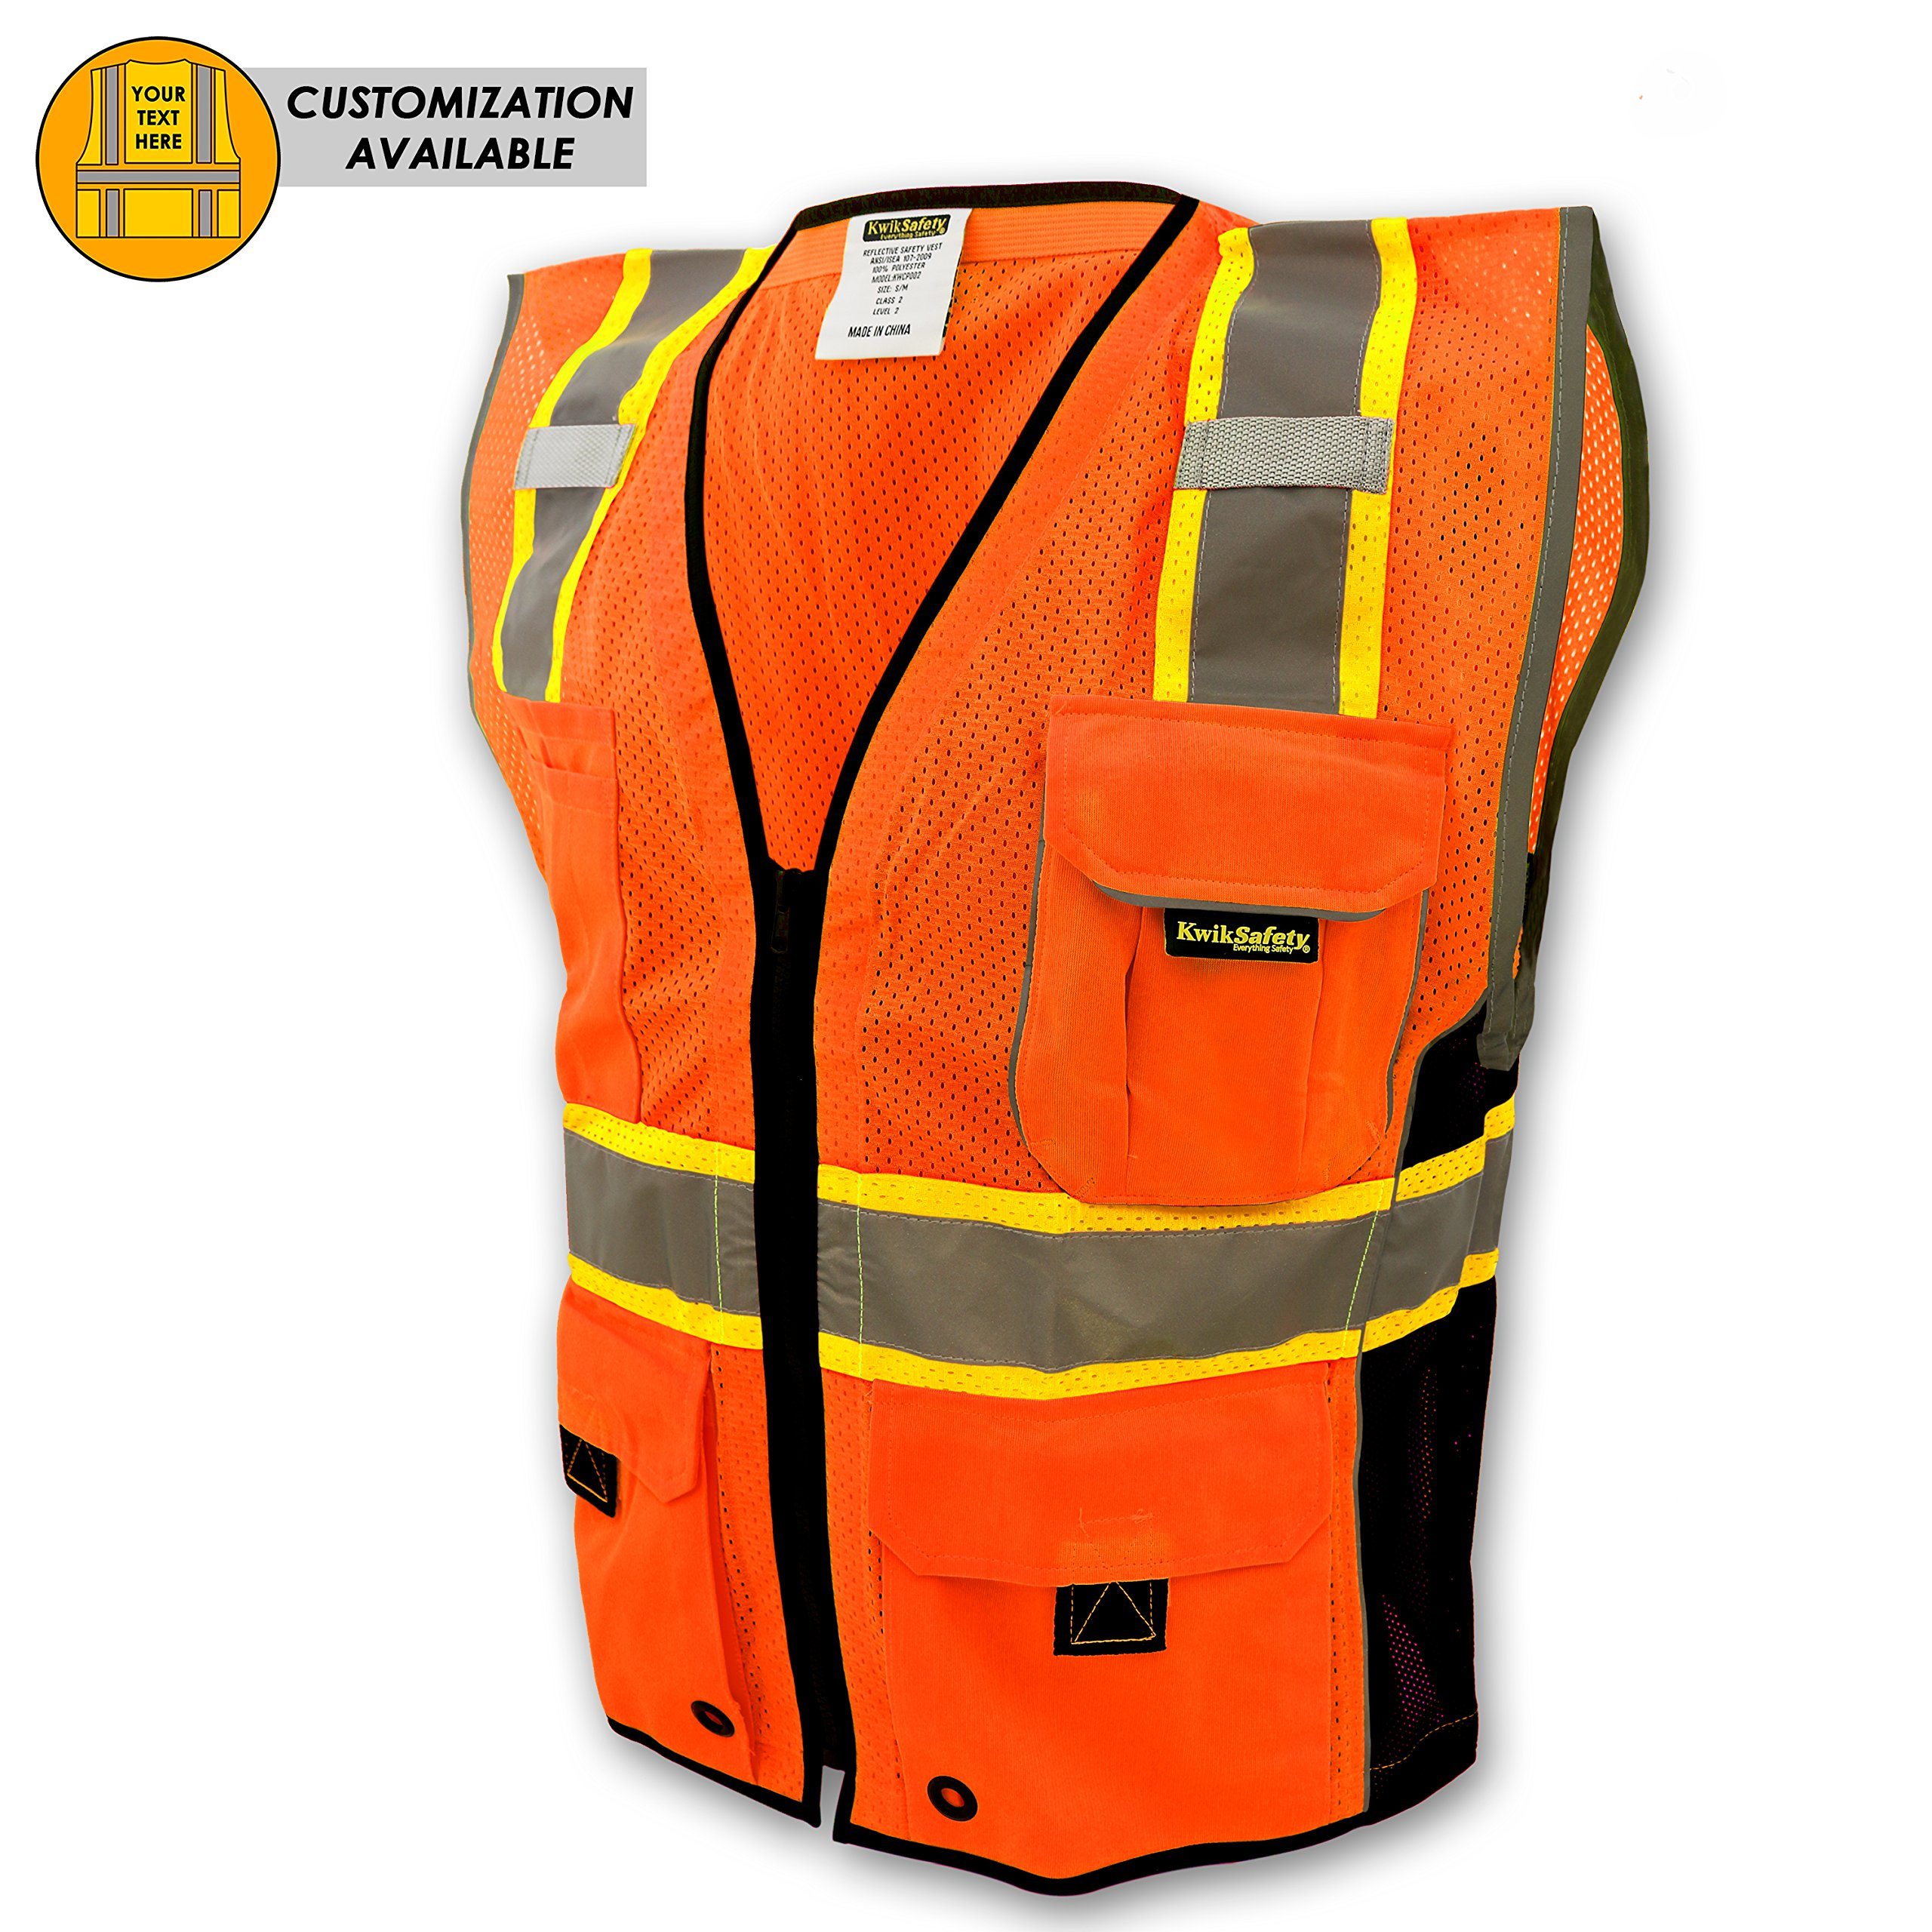 KwikSafety CLASSIC Safety Vest | Class 2 ANSI OSHA PPE | High Visibility Reflective Stripes, Heavy Duty Mesh with Pockets and Zipper | Hi-Vis Construction Work Hi-Vis Surveyor | Orange S/M